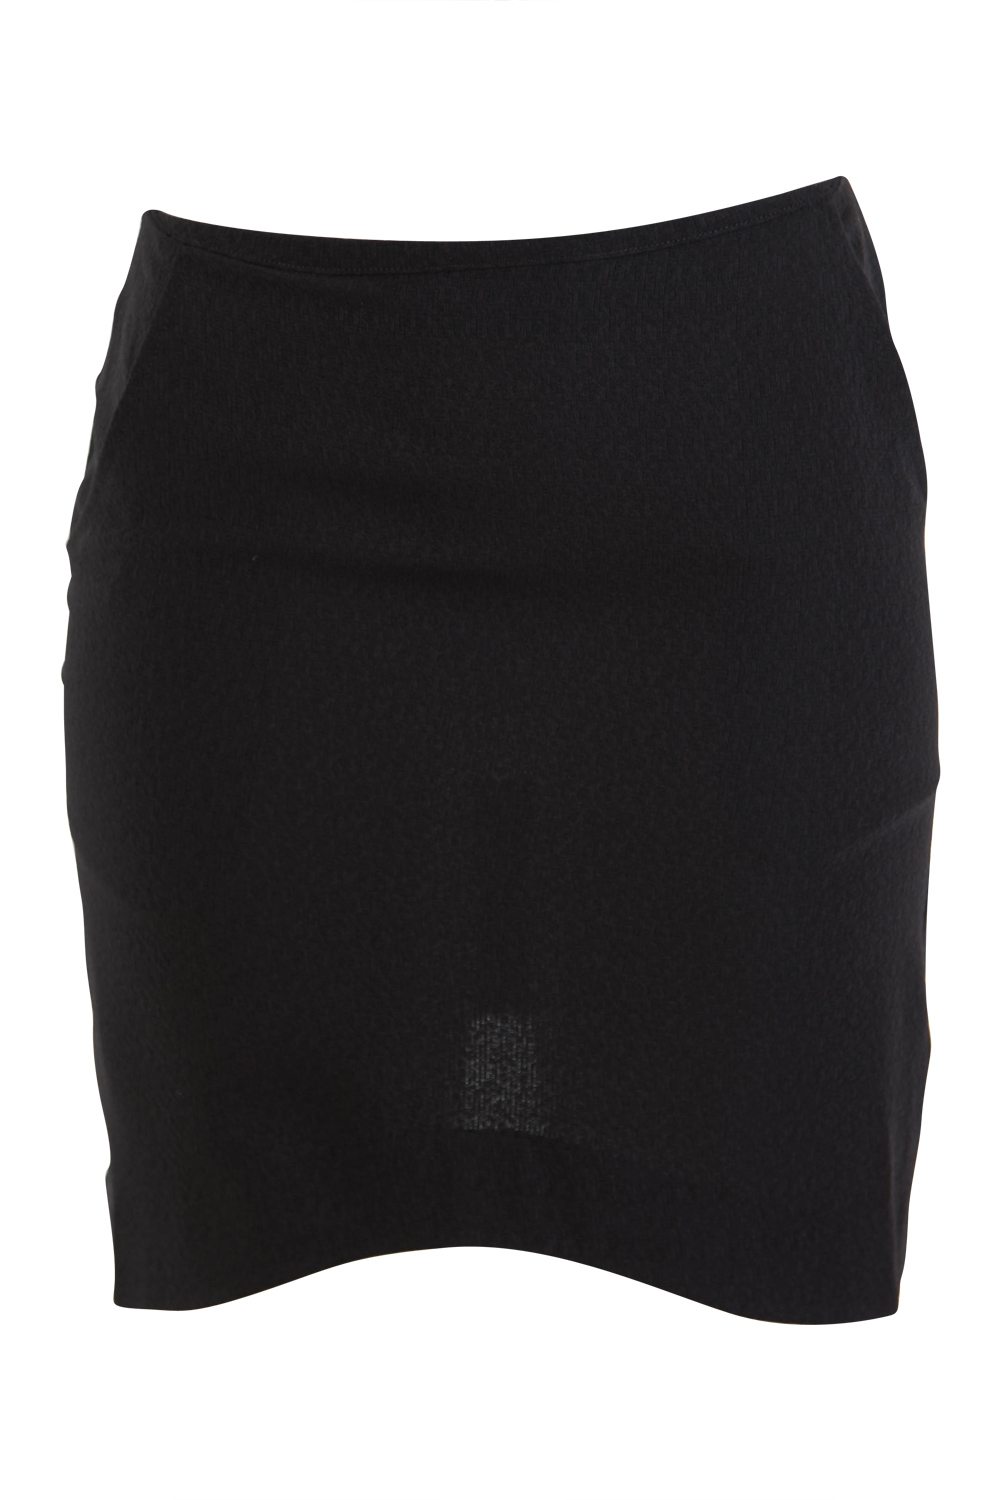 Mink Pink Dollface Skirt